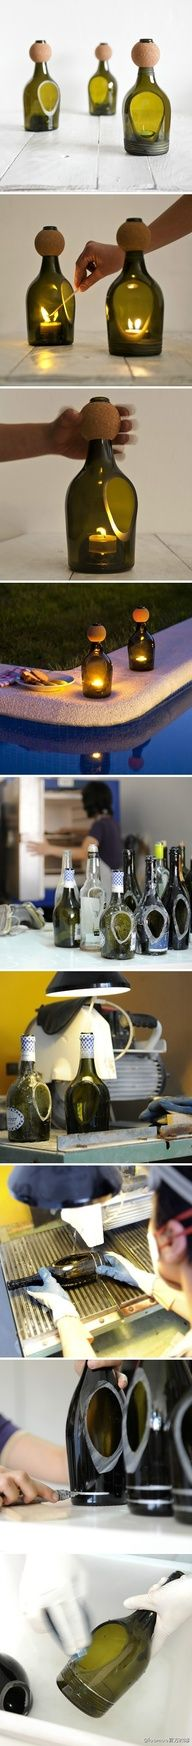 44 Simple DIY Wine Bottles Crafts And Ideas On How To Cut Glass: still not old enough to drink wine but I shall find one in any recycling bin to do this DIY! Wine Bottle Corks, Glass Bottle Crafts, Diy Bottle, Wine Bottle Candles, Beer Bottles, Garrafa Diy, Bottle Cutting, Cutting Glass Bottles, Cut Bottles